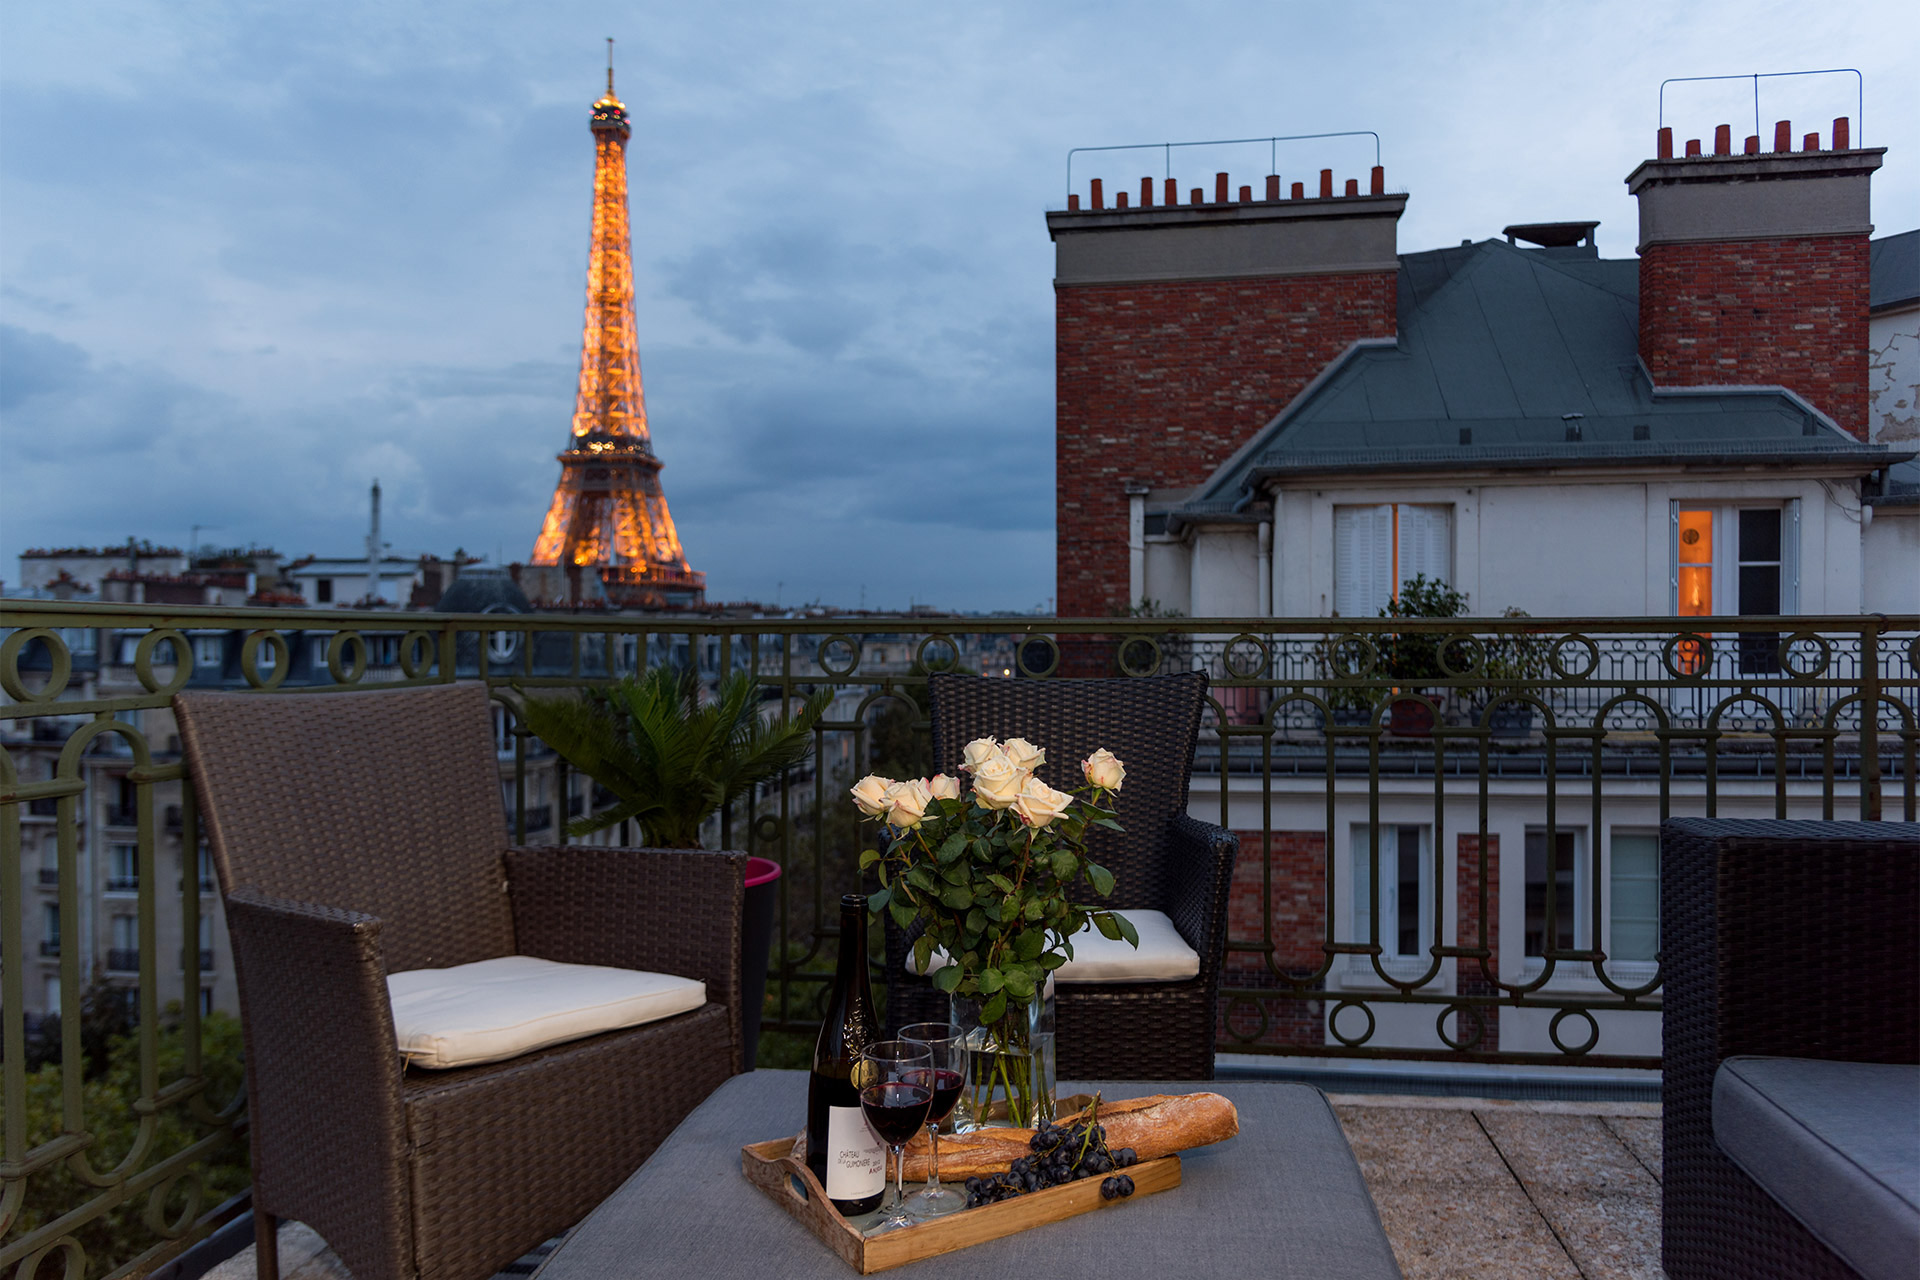 Amazing Eiffel view from the balcony of the Margaux vacation rental offered by Paris Perfect